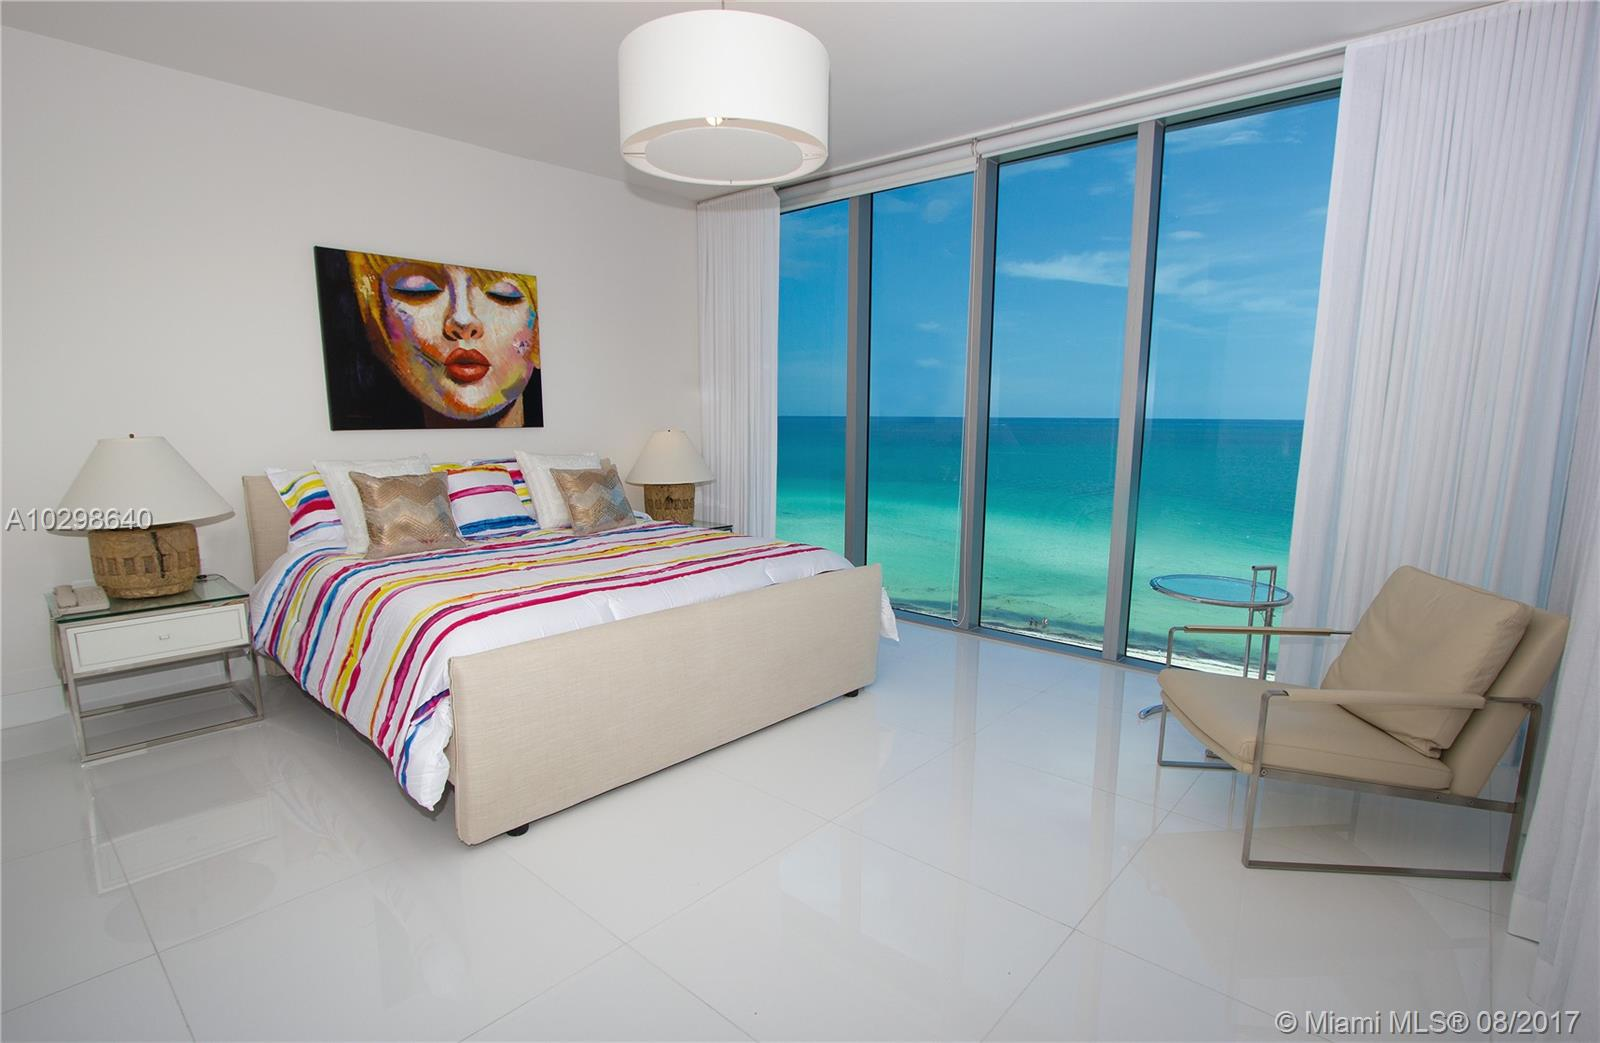 6899 Collins Ave, 908 - Miami Beach, Florida